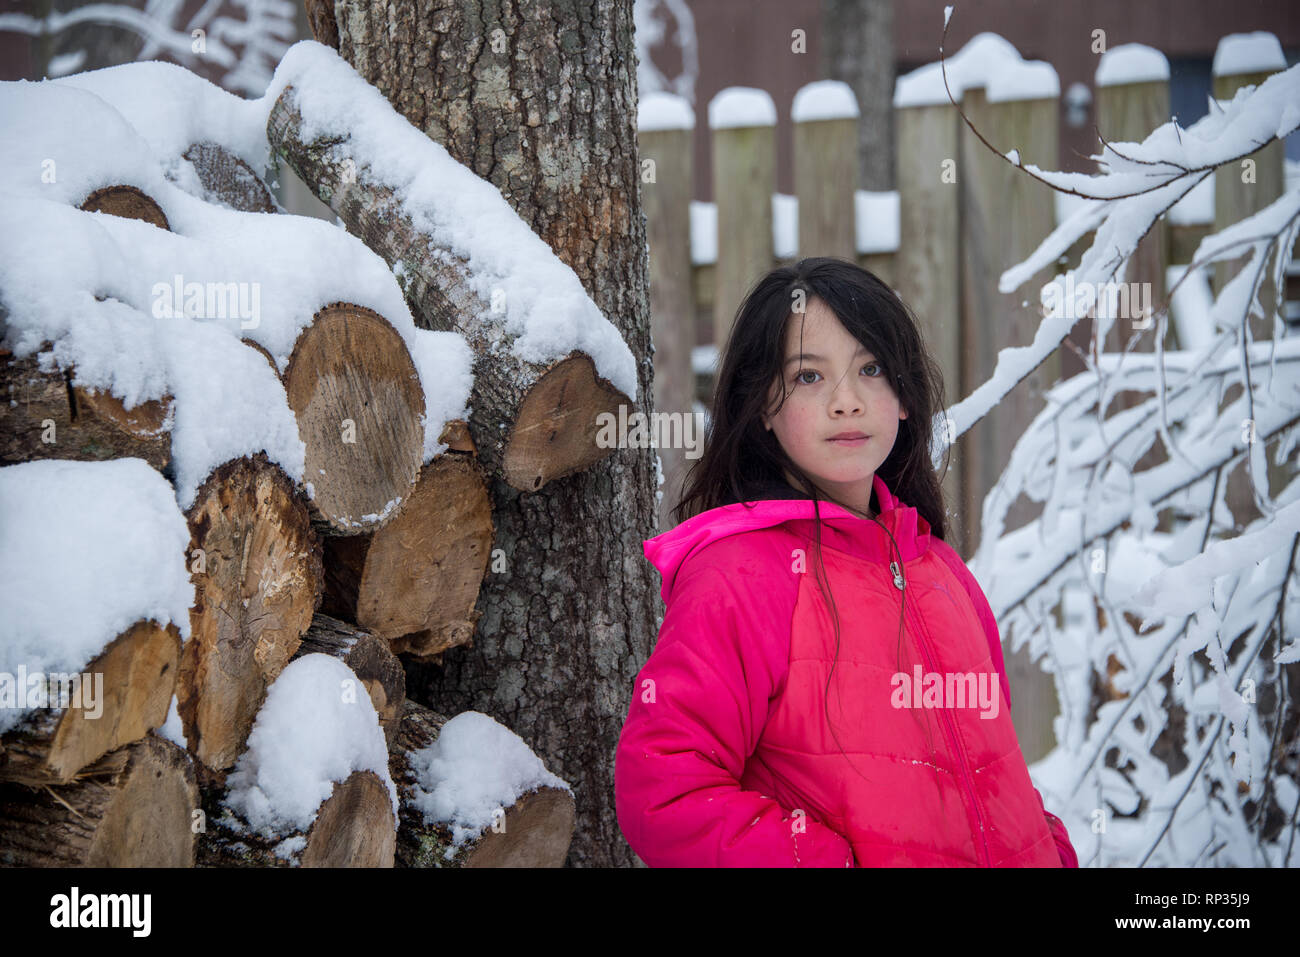 Young Asian girl in pink coat standing next to snow covered log pile - Stock Image